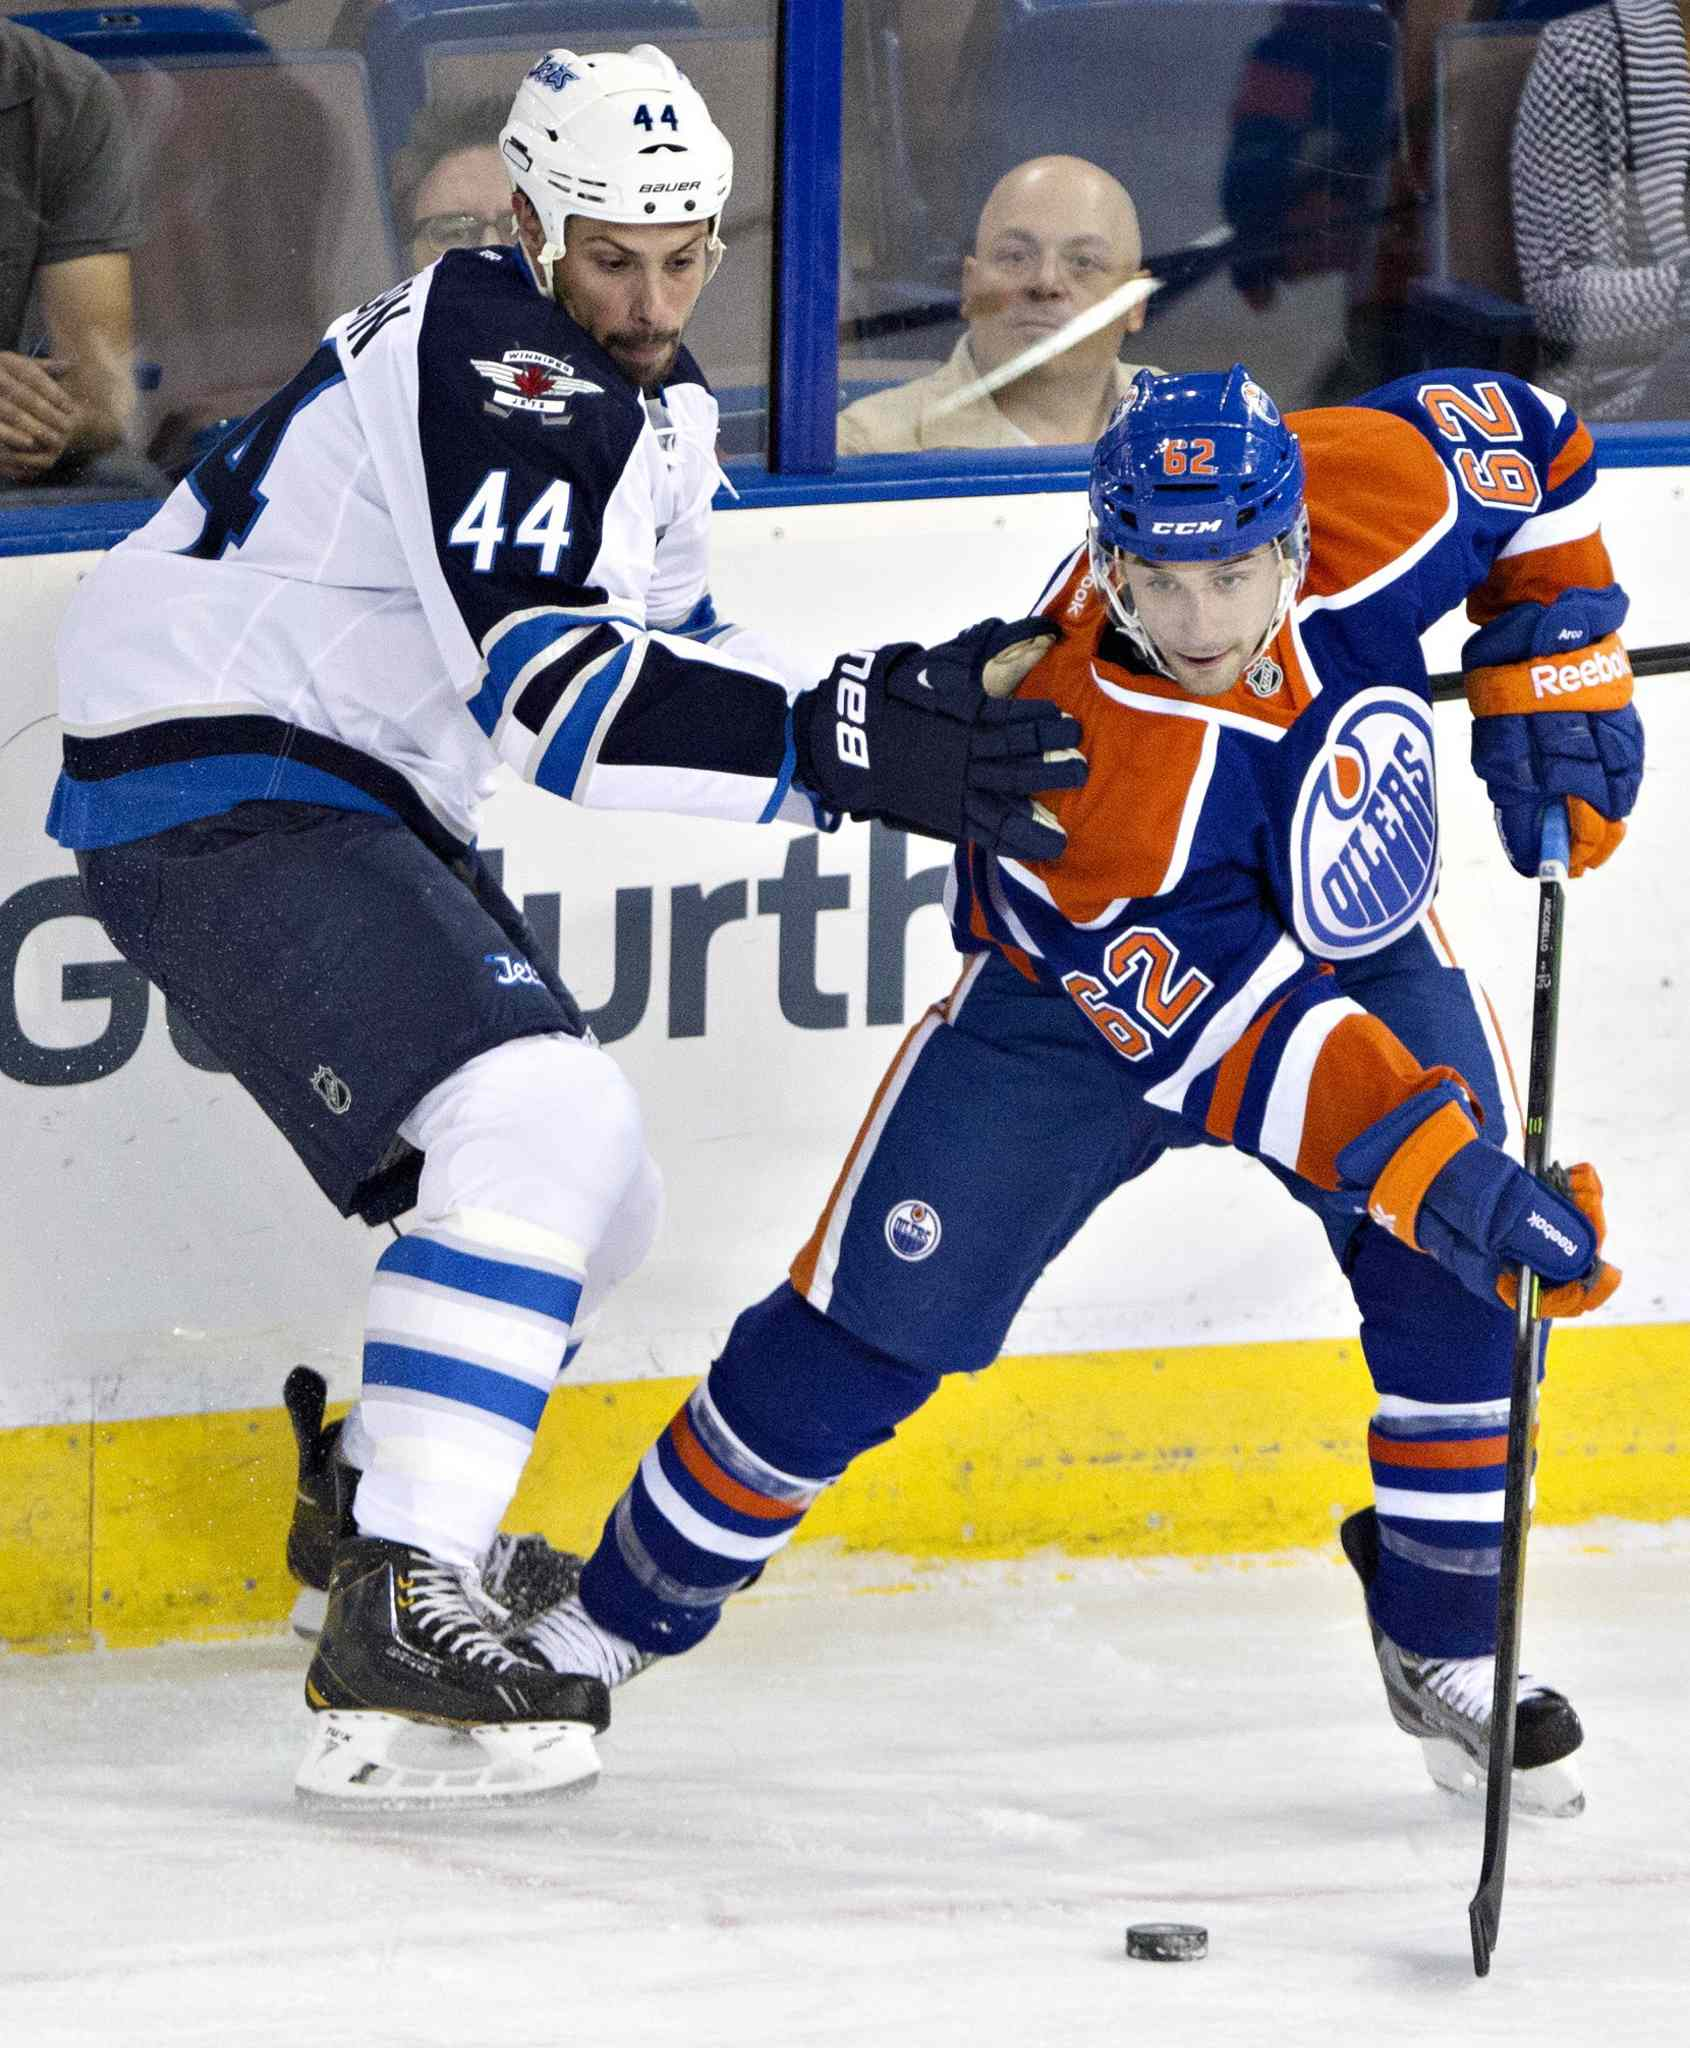 Winnipeg Jets Zach Bogosian (left) and Edmonton Oilers Mark Arcobello (right) battle for the puck in the corner during the first period.